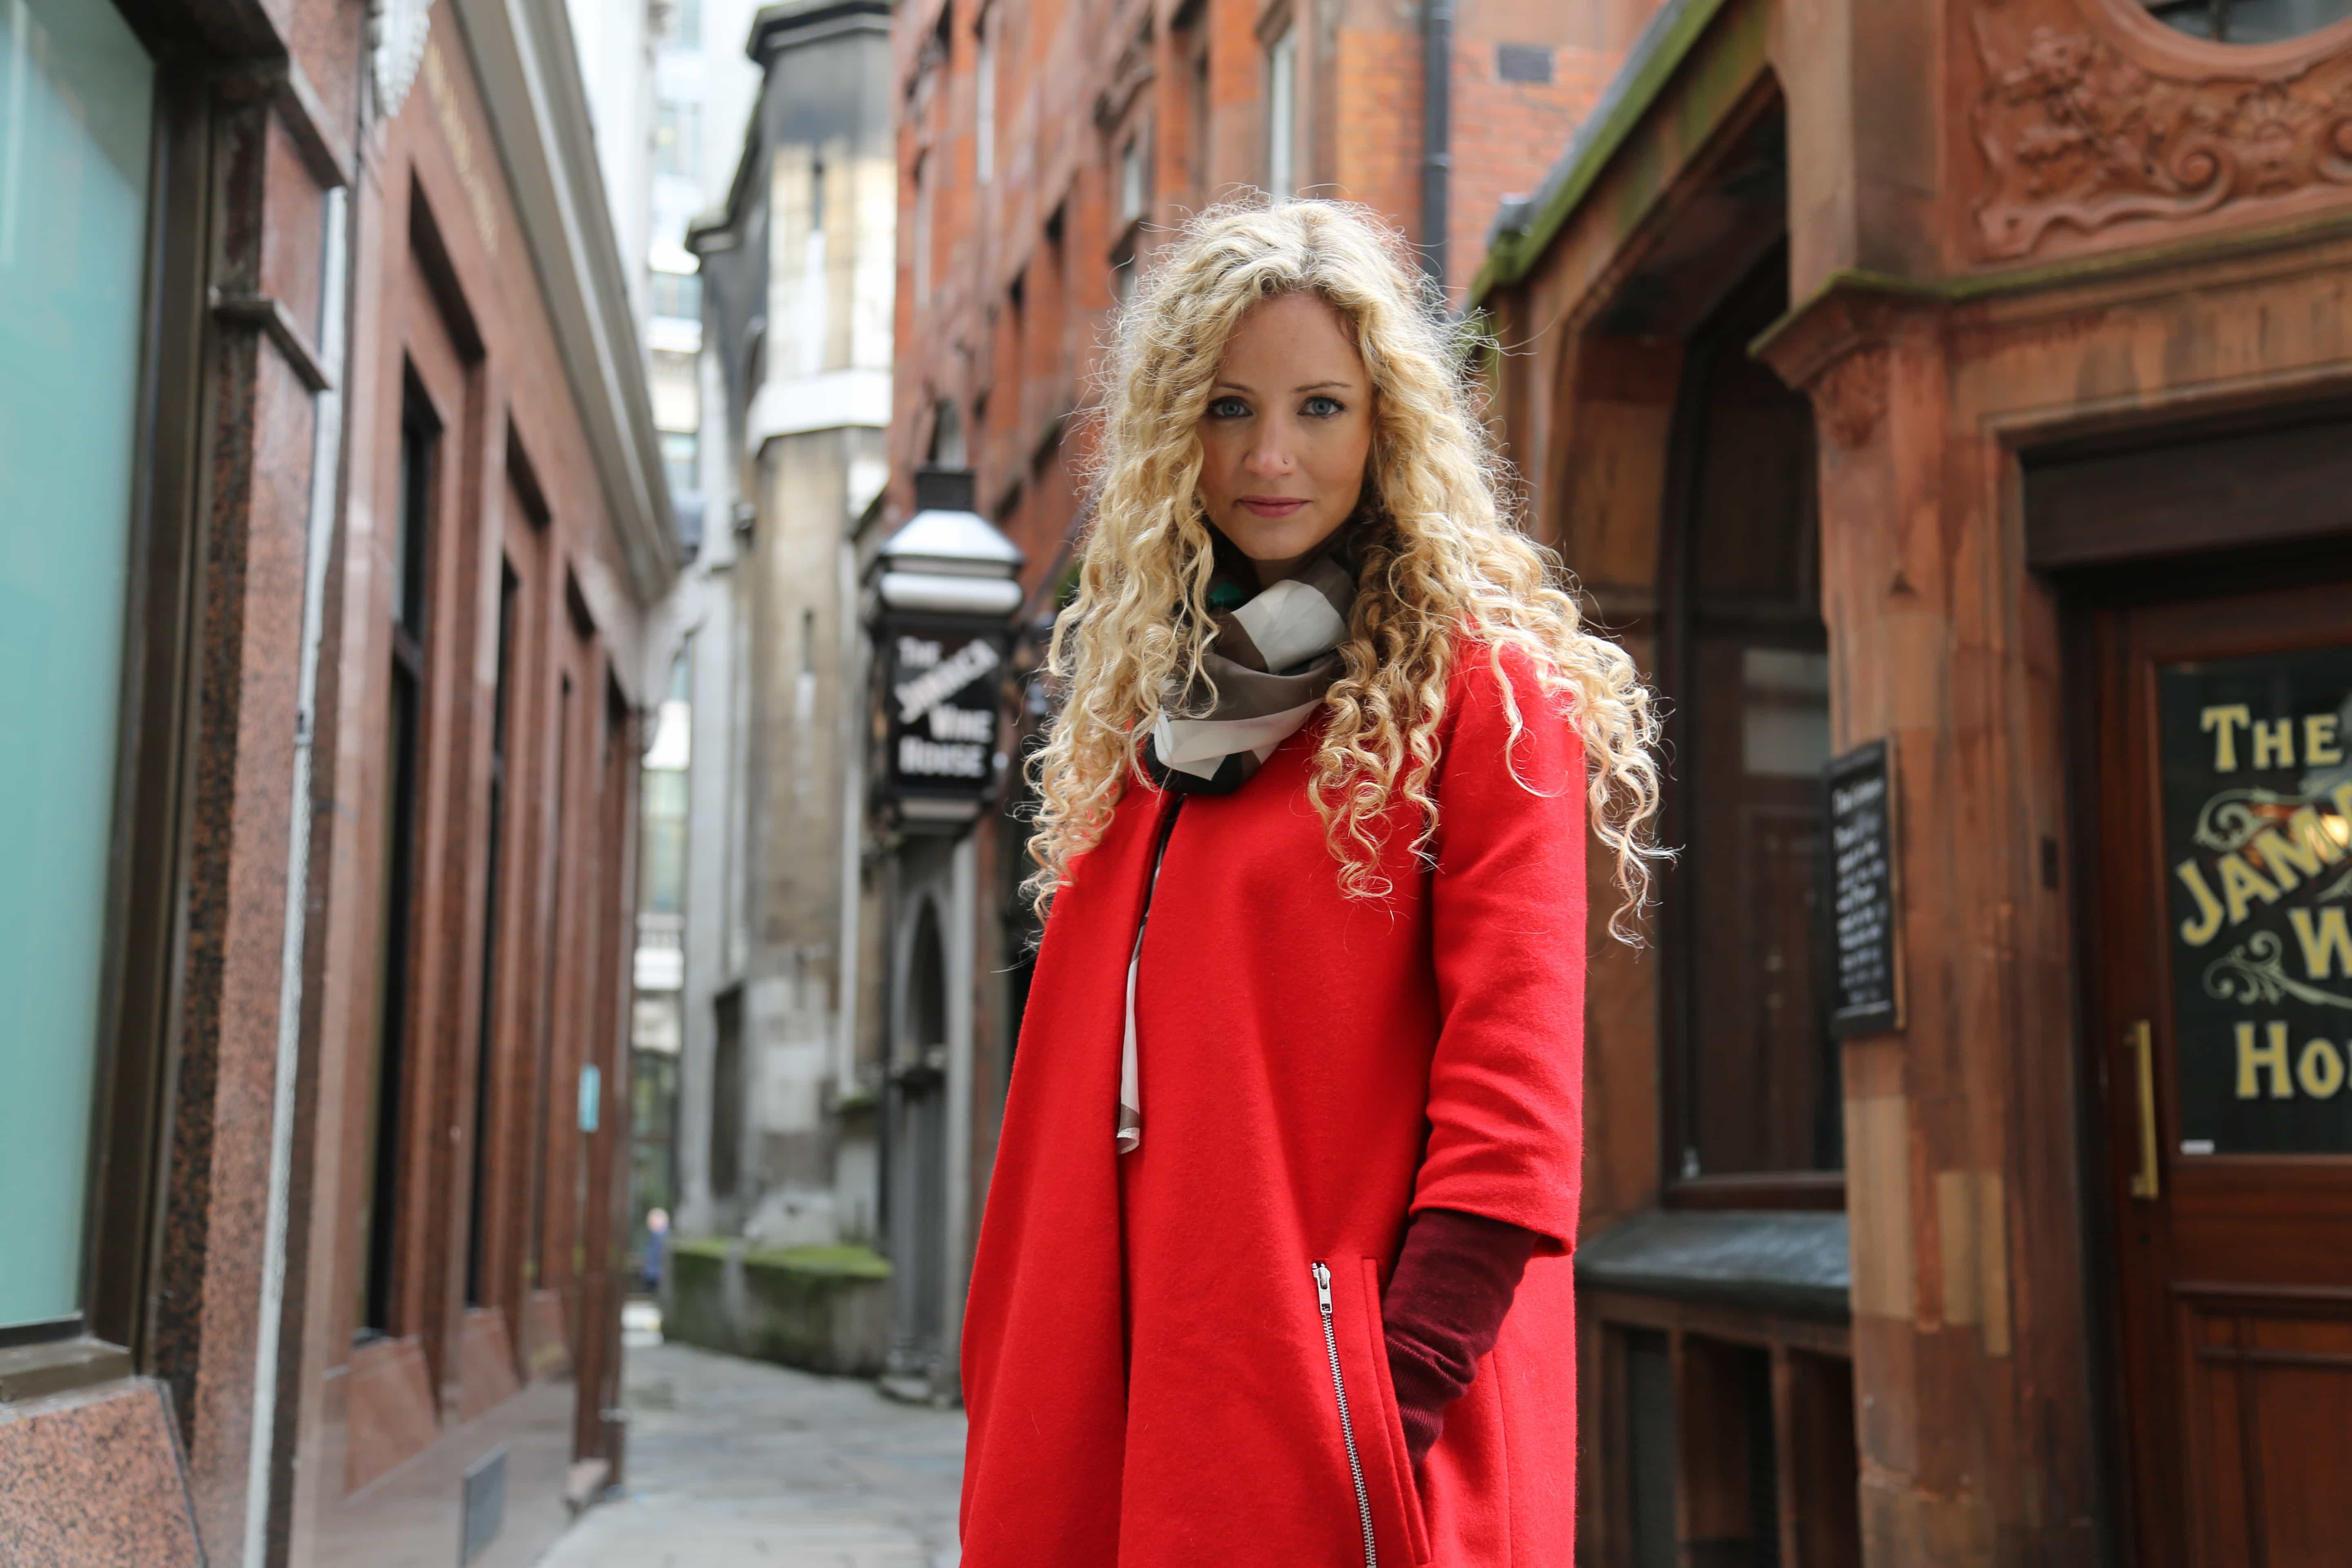 My lovely red coat comes from Beatrice Perry London.